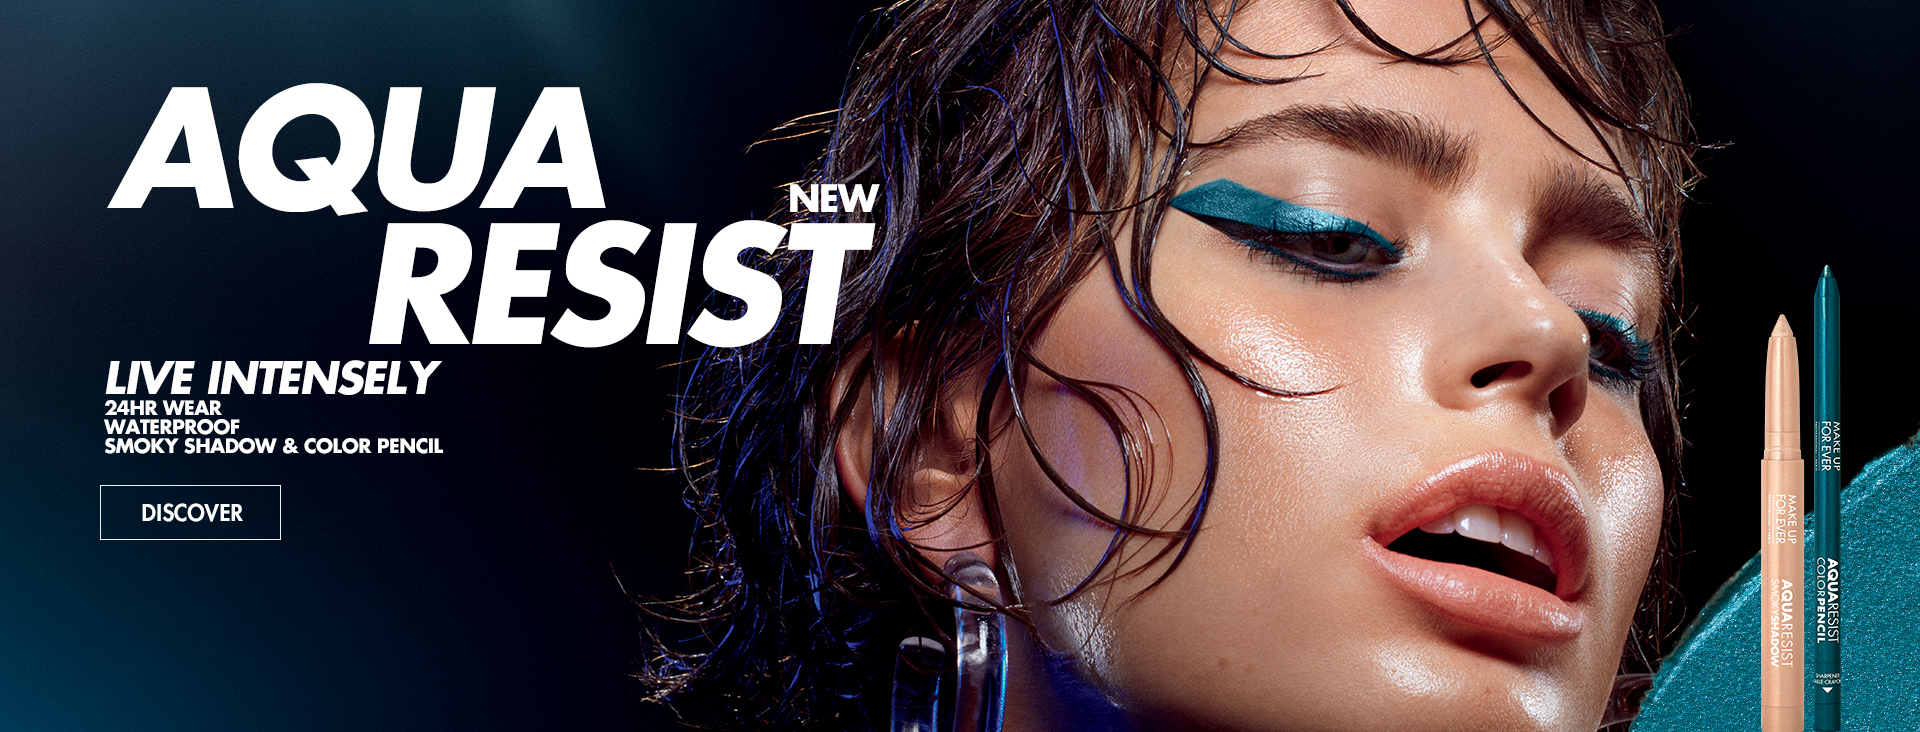 New Aqua Resist Smocky Shadow and Color Pencil